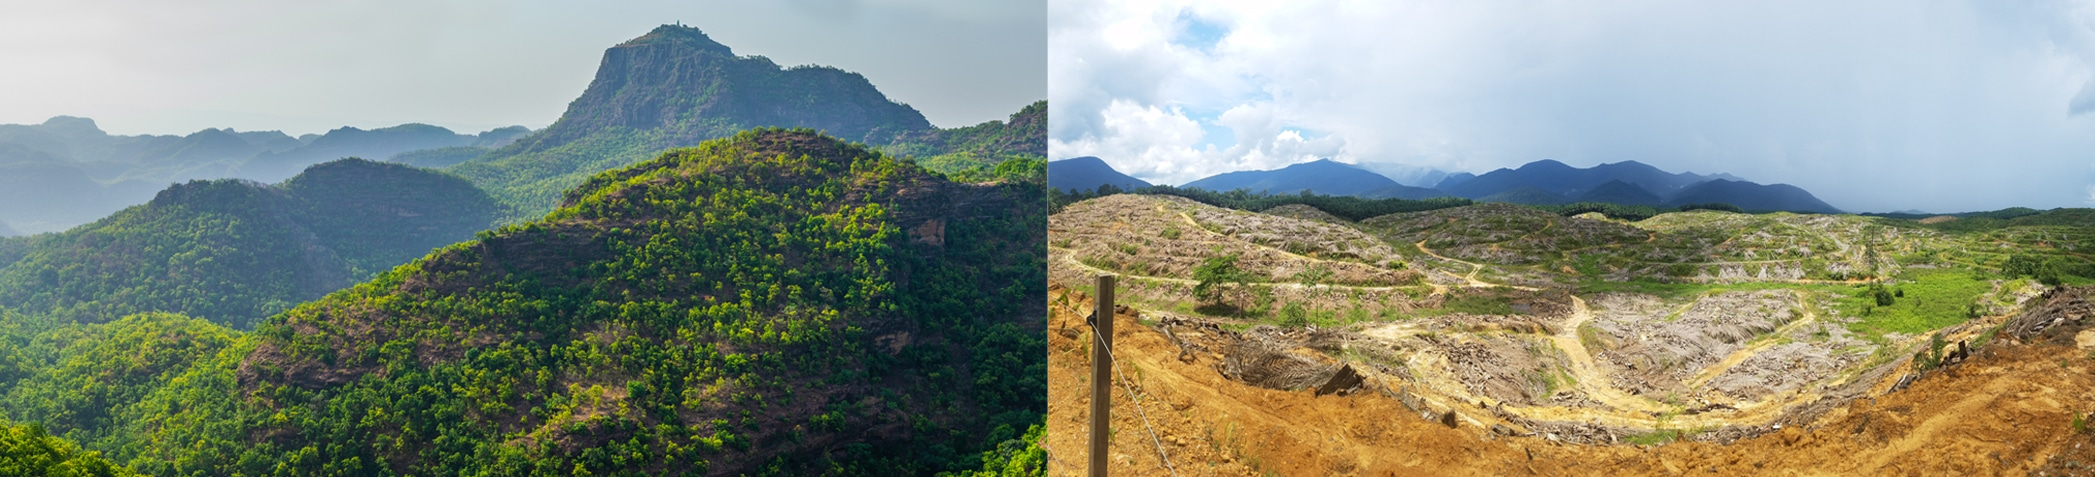 comparison of forest and deforested land